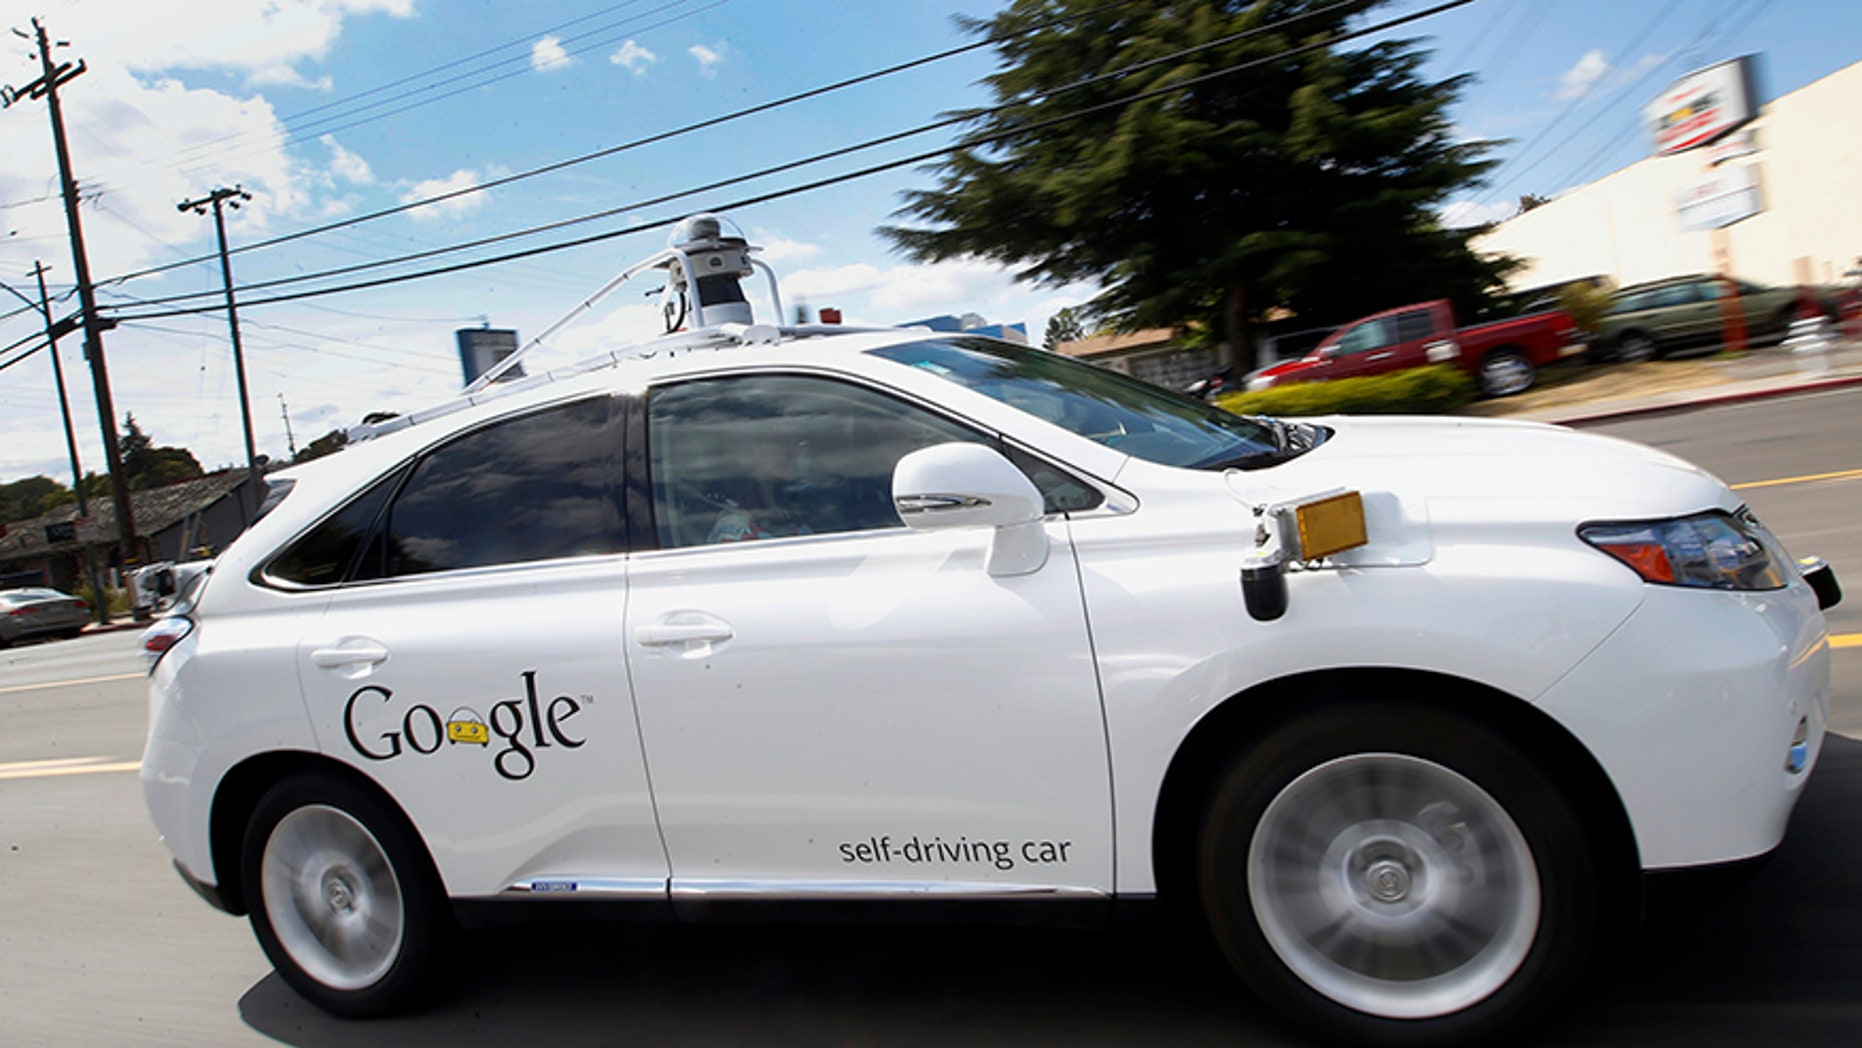 FILE - In this May 13, 2015 file photo, Google's self-driving Lexus car drives along street during a demonstration at Google campus in Mountain View, Calif. A House panel on Wednesday, July 19, 2017, backed legislation designed to allow automakers to increase the testing of self-driving cars on U.S. roads. (AP Photo/Tony Avelar, File)